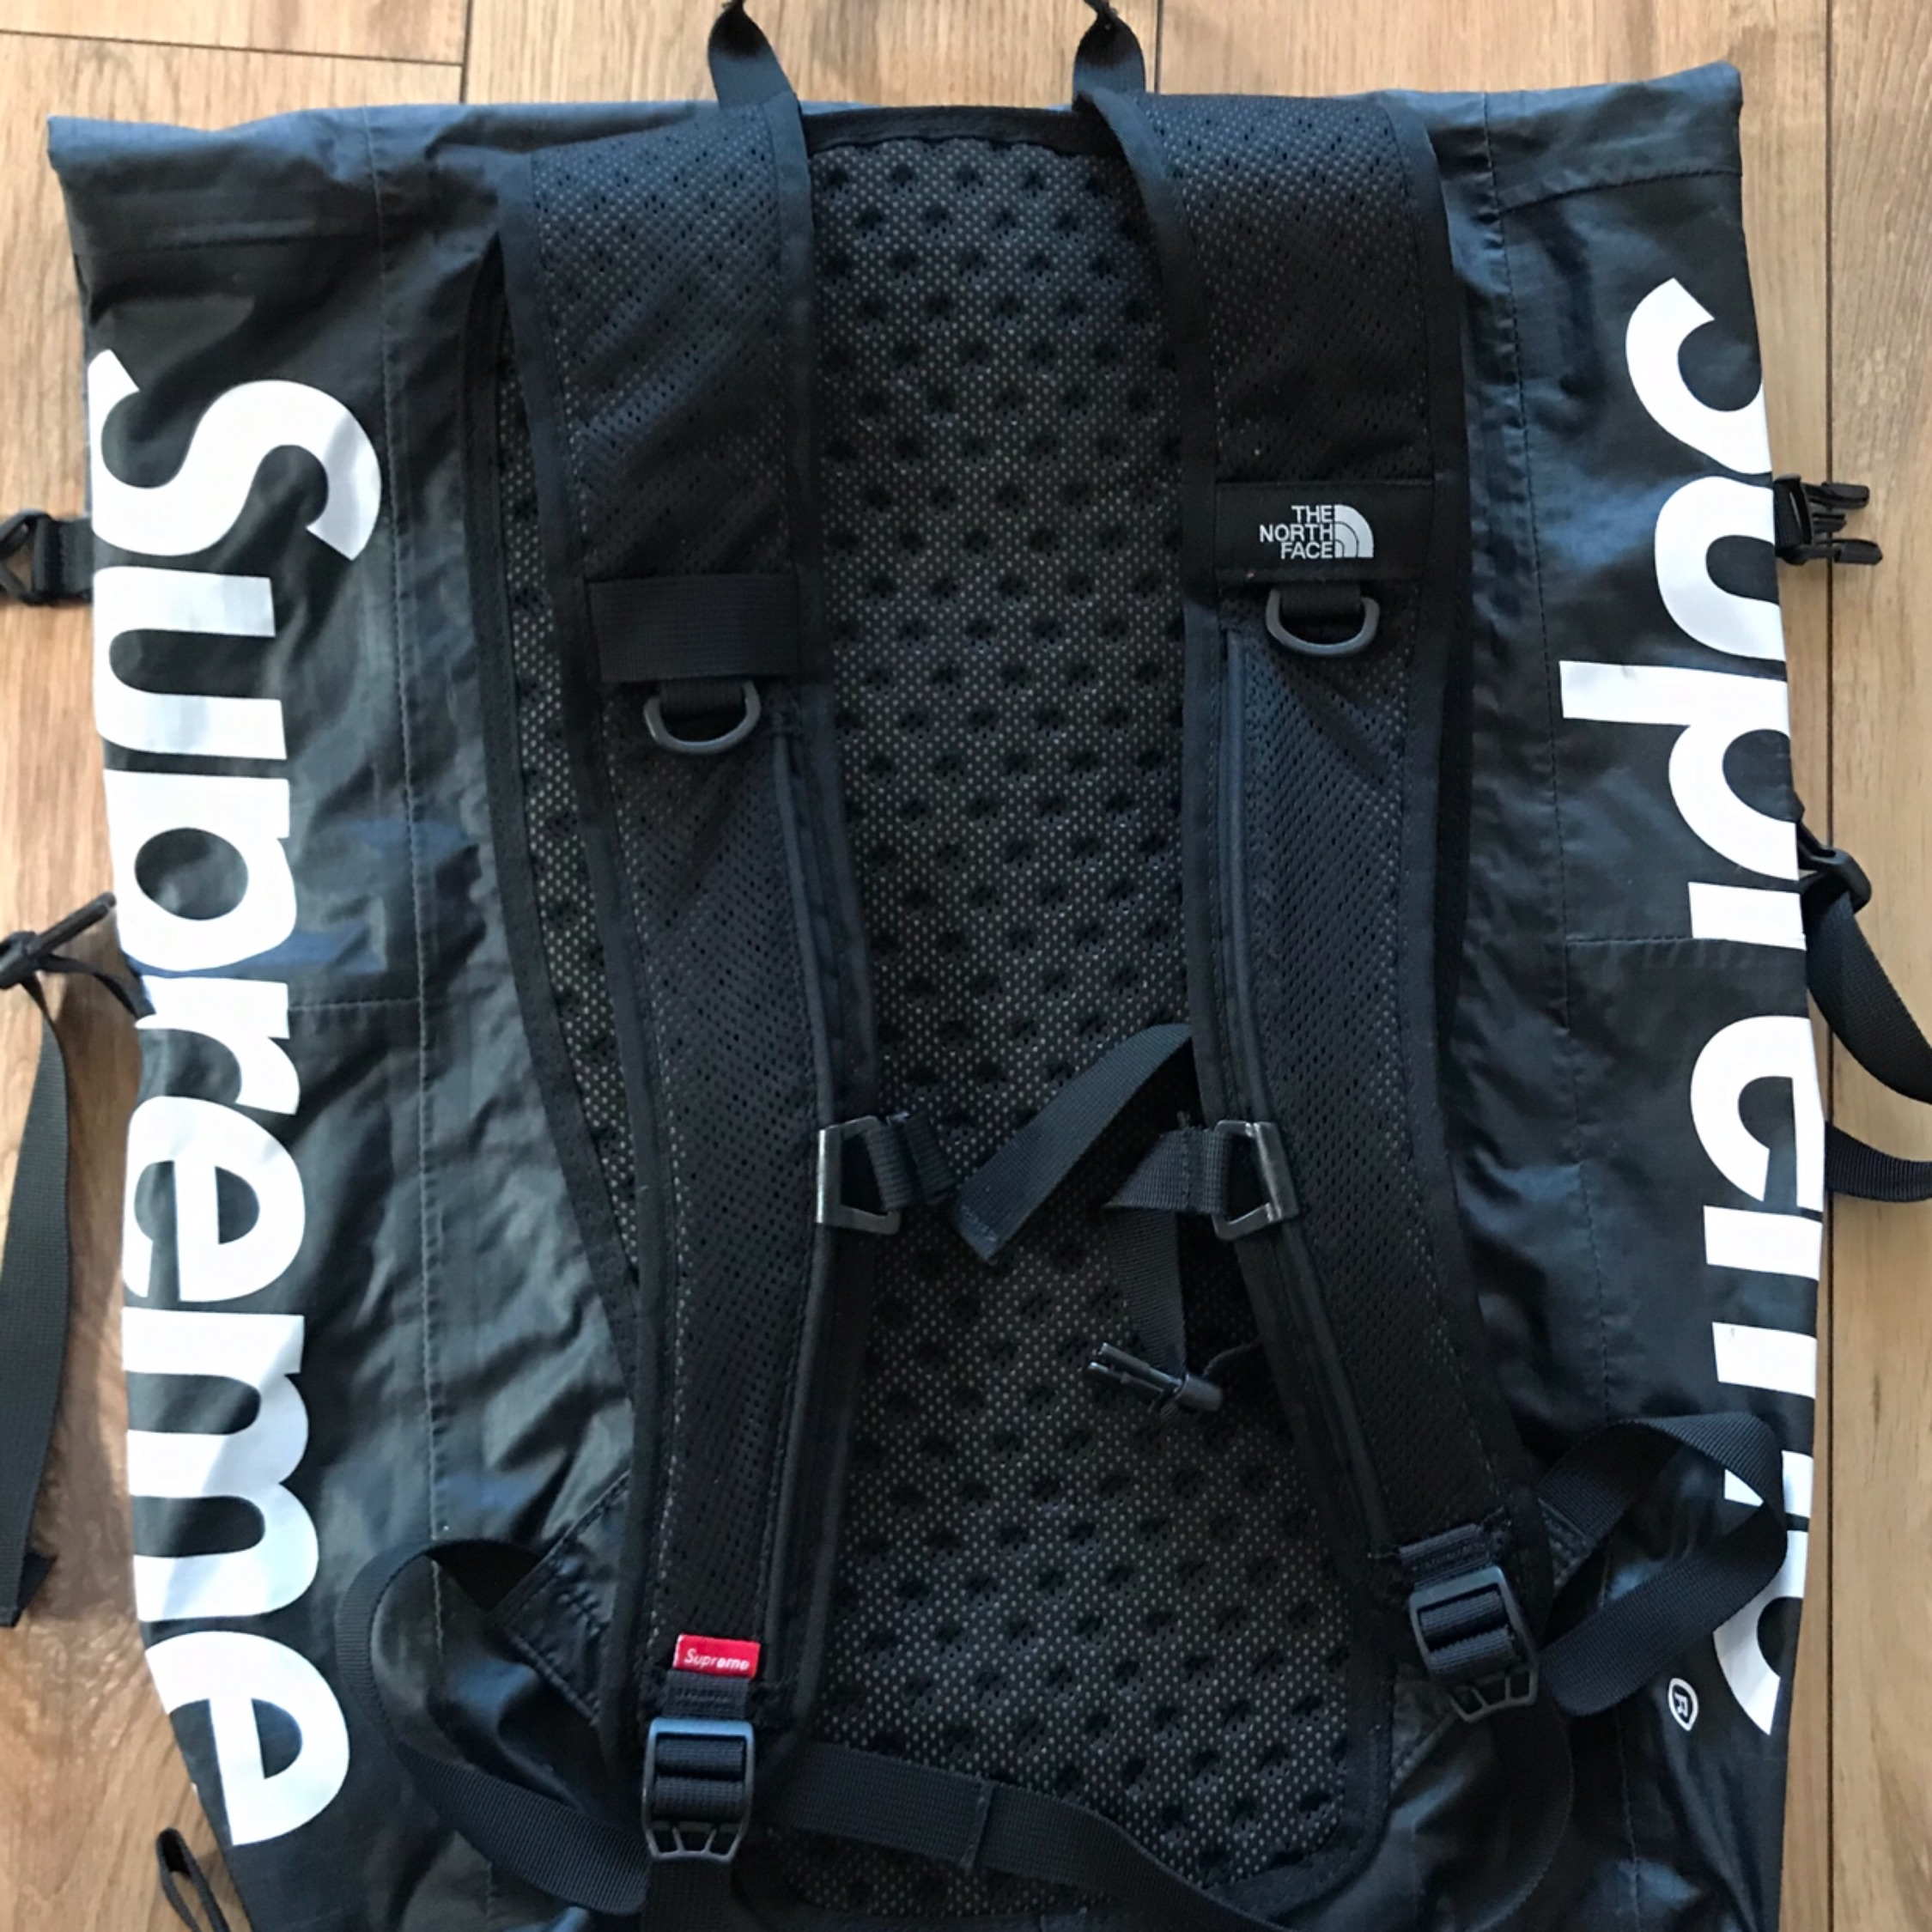 32bc4c23c Ss17 Supreme X The North Face Waterproof Backpack